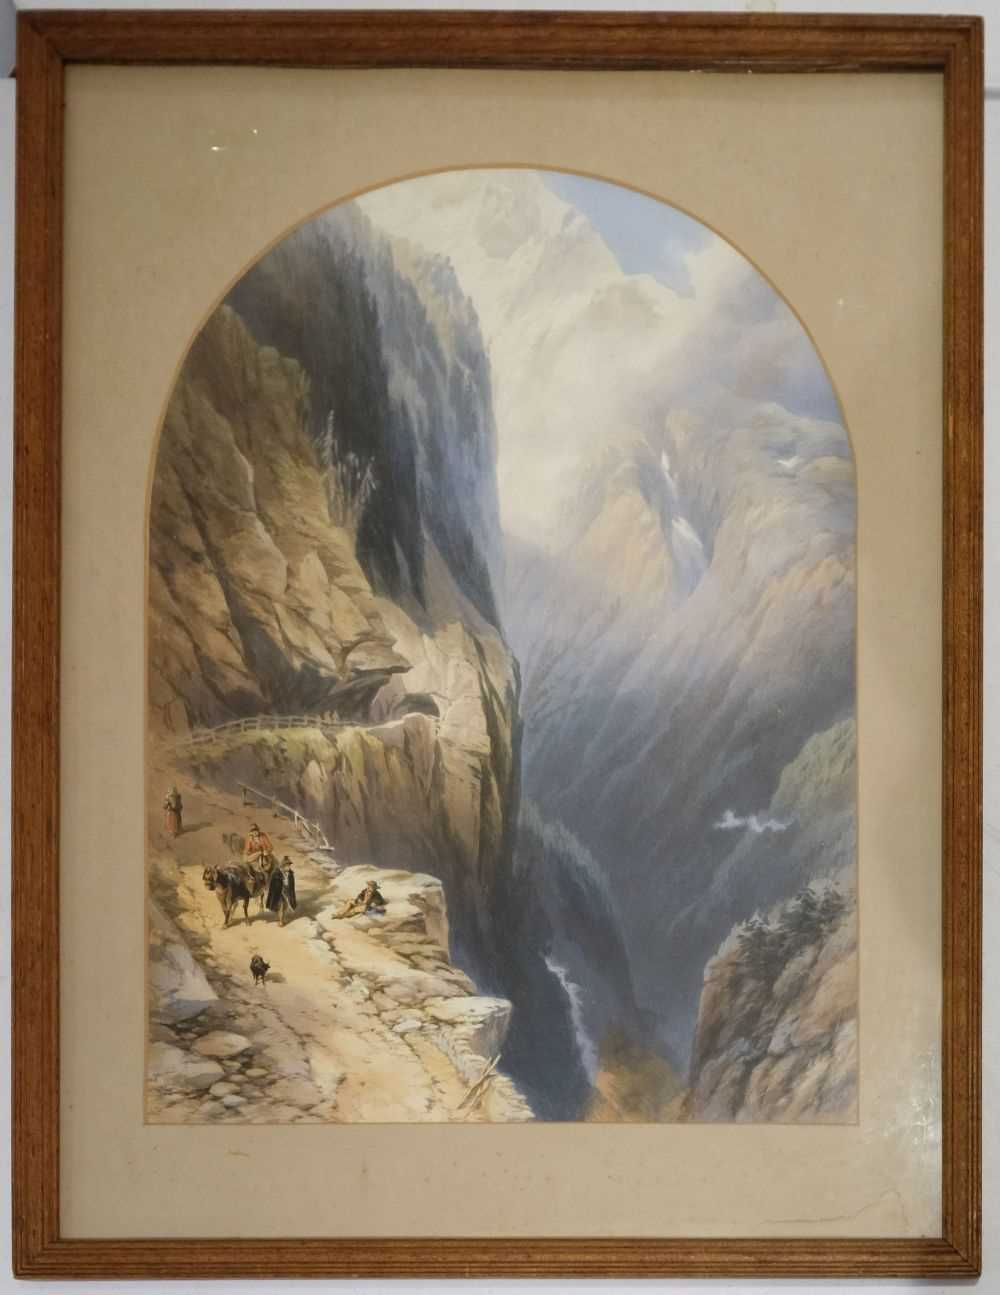 Lot 11 - Mountaineering. Letters & photos relating to mountaineering expeditions etc., mostly early 20th c.